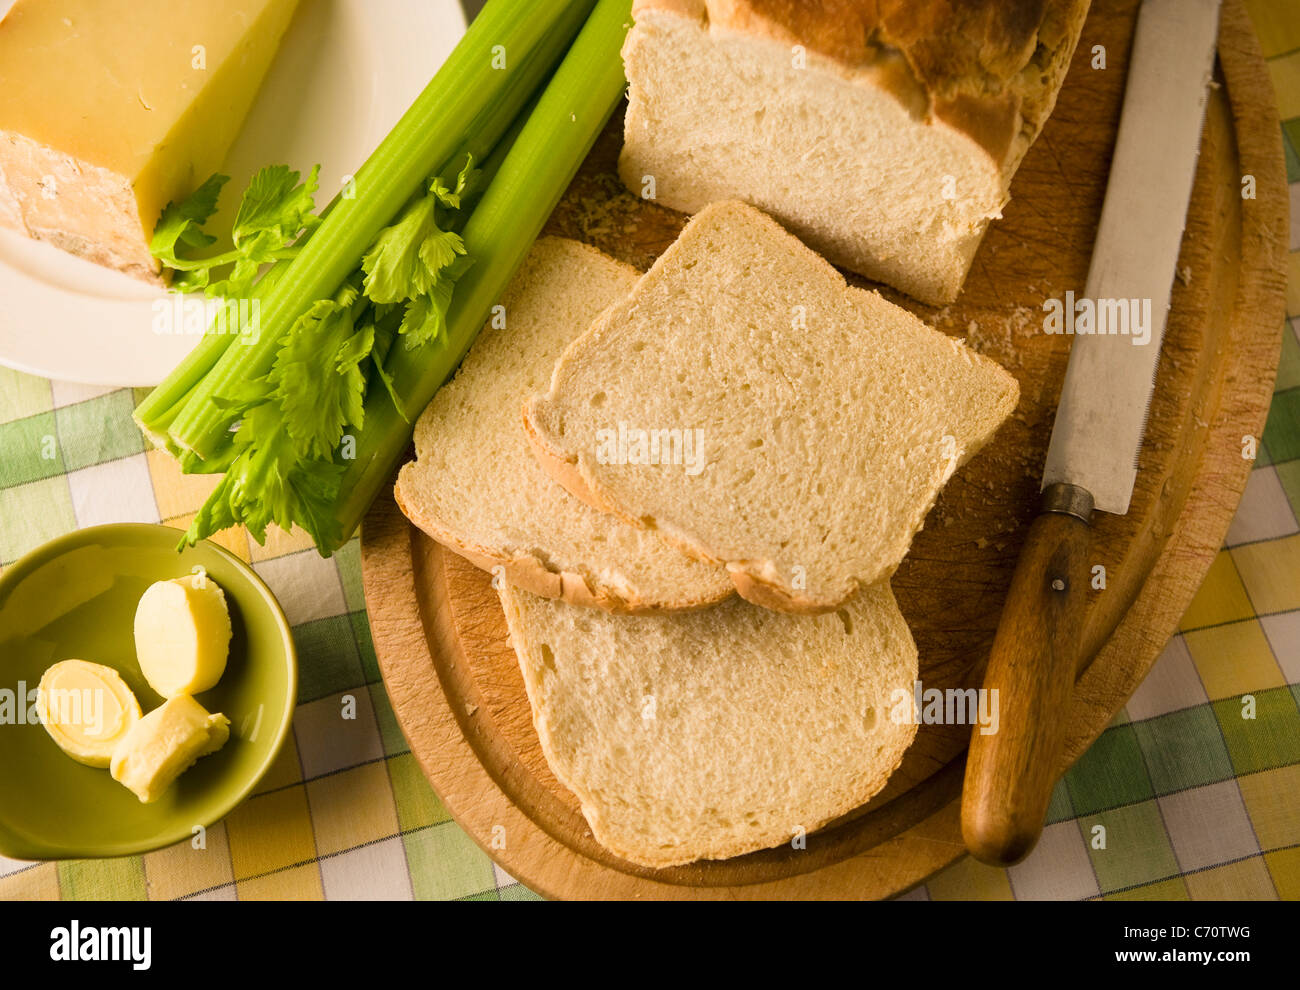 Slices of bread, celery and cheese - Stock Image